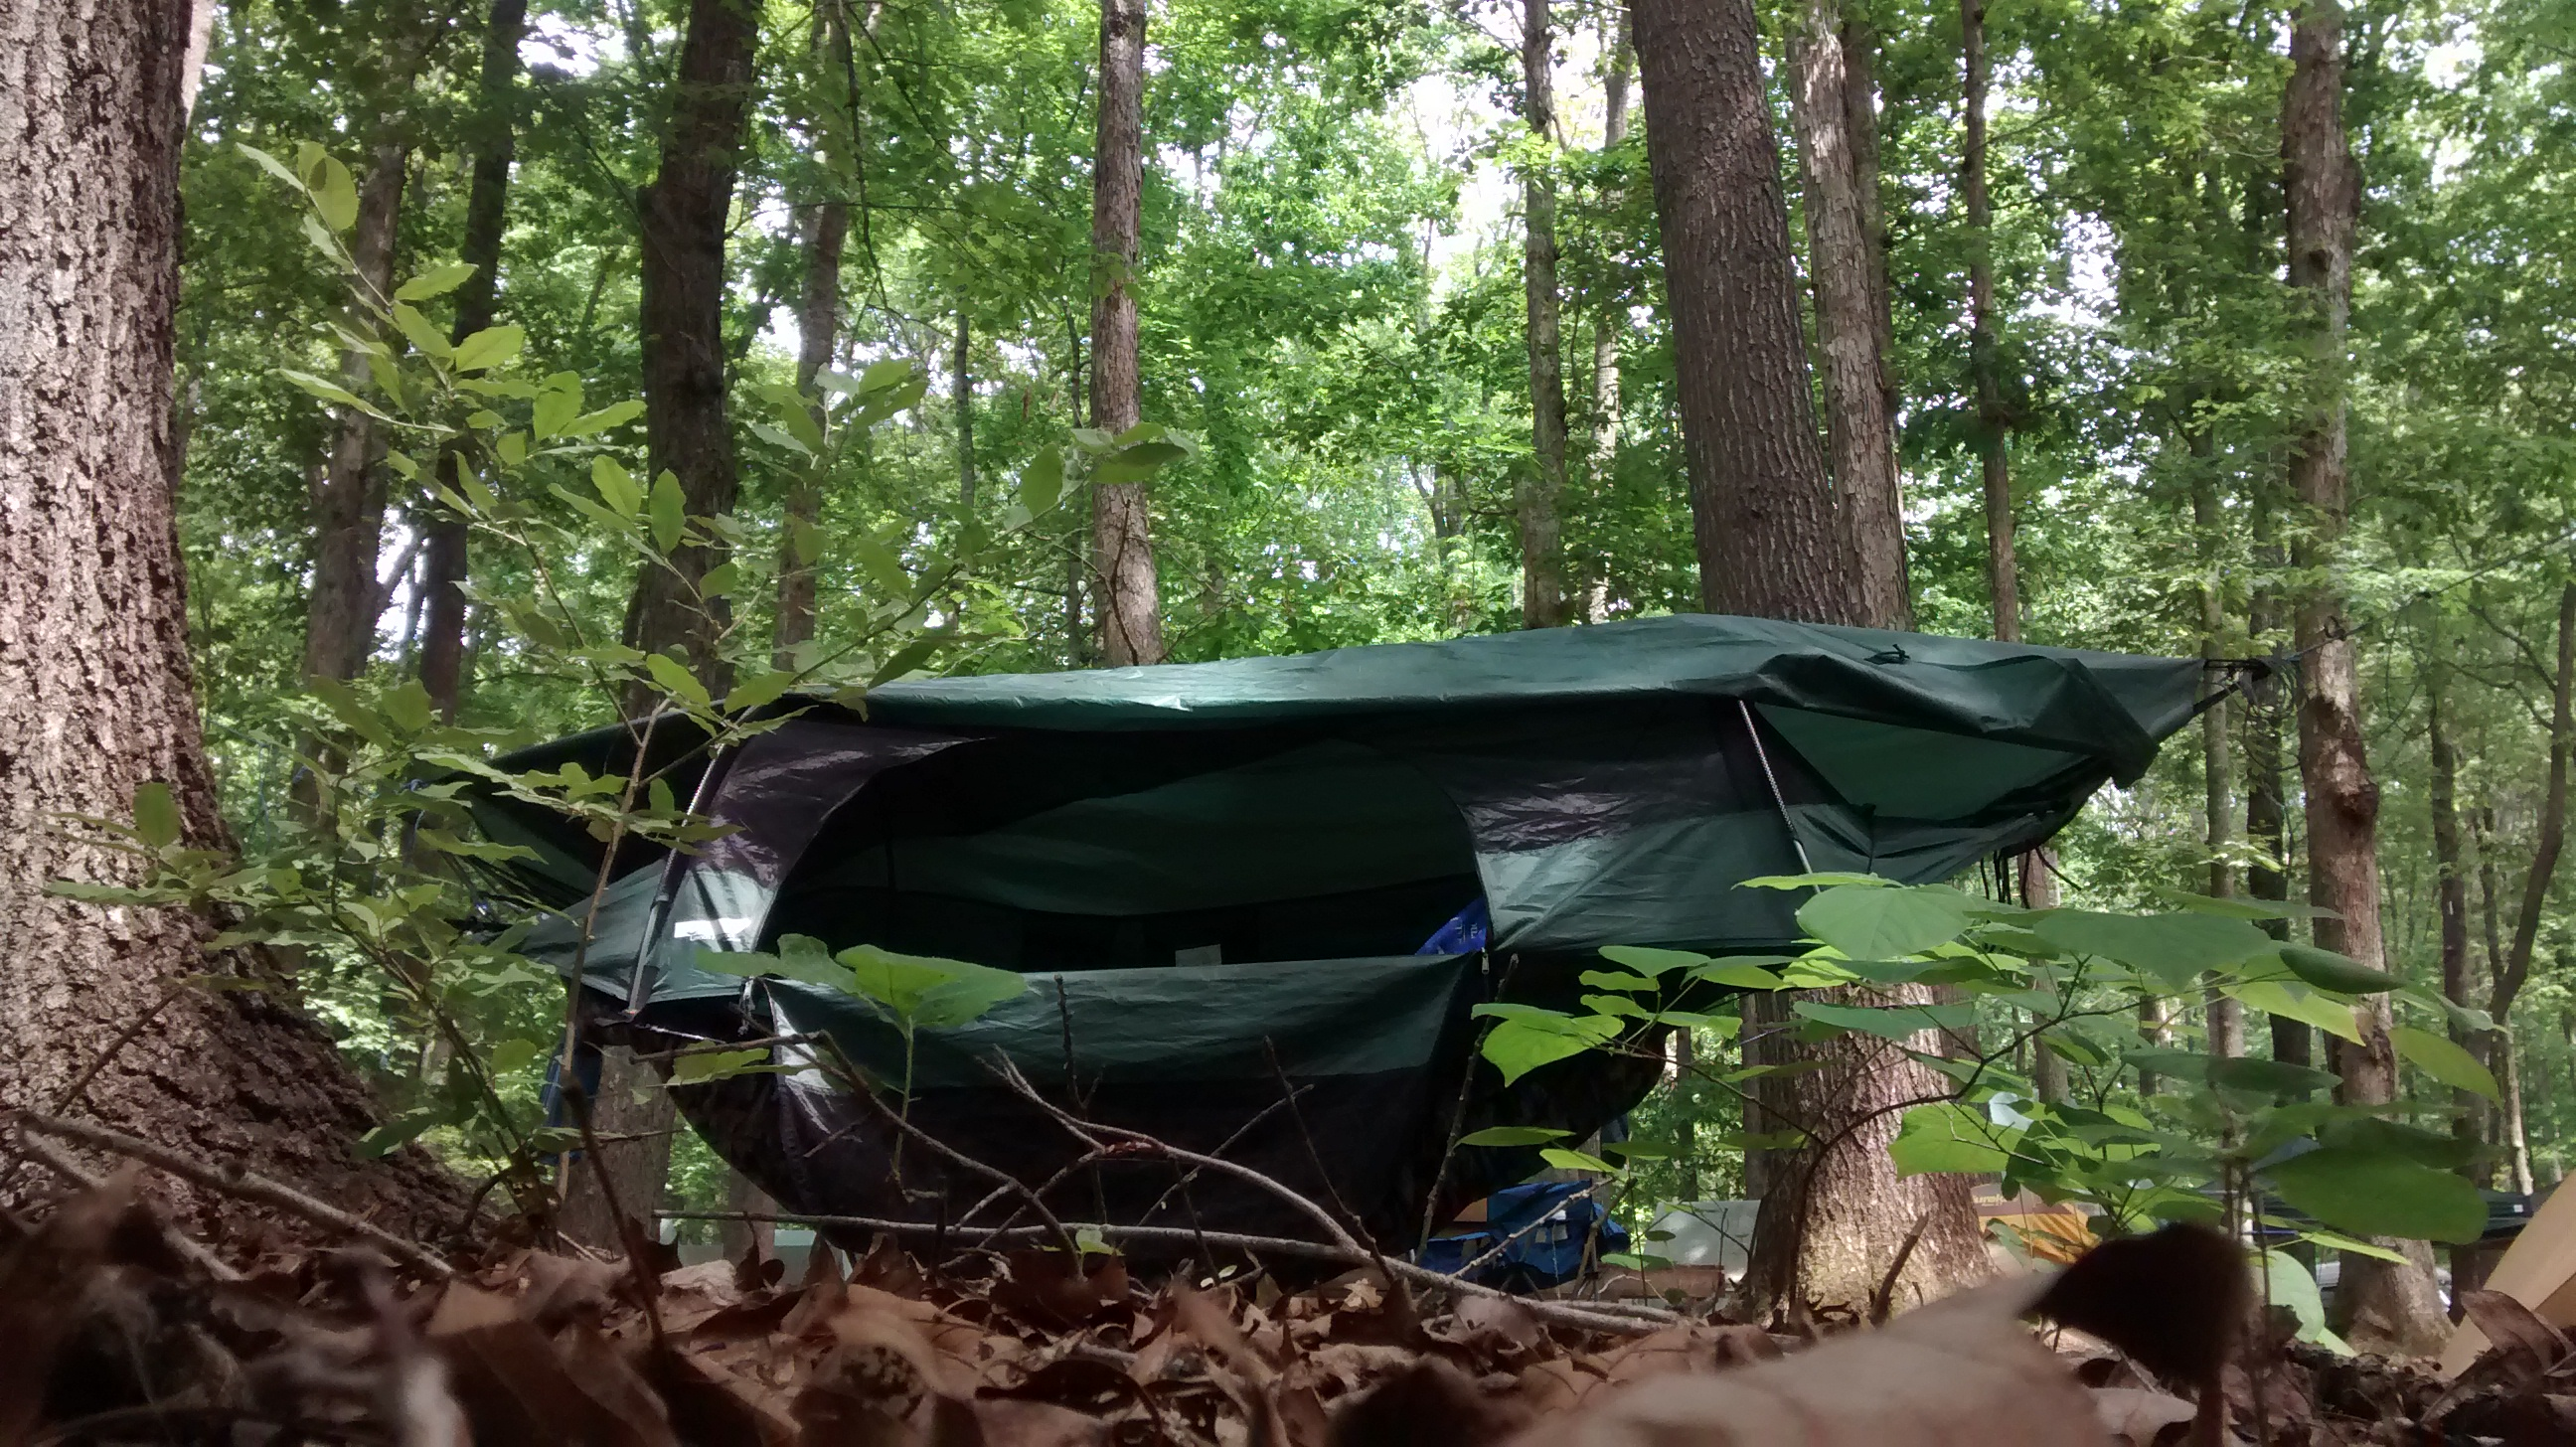 Blue Ridge C&ing Hammock - door open & Lawson Hammock Blue Ridge Camping Hammock Long Term Review